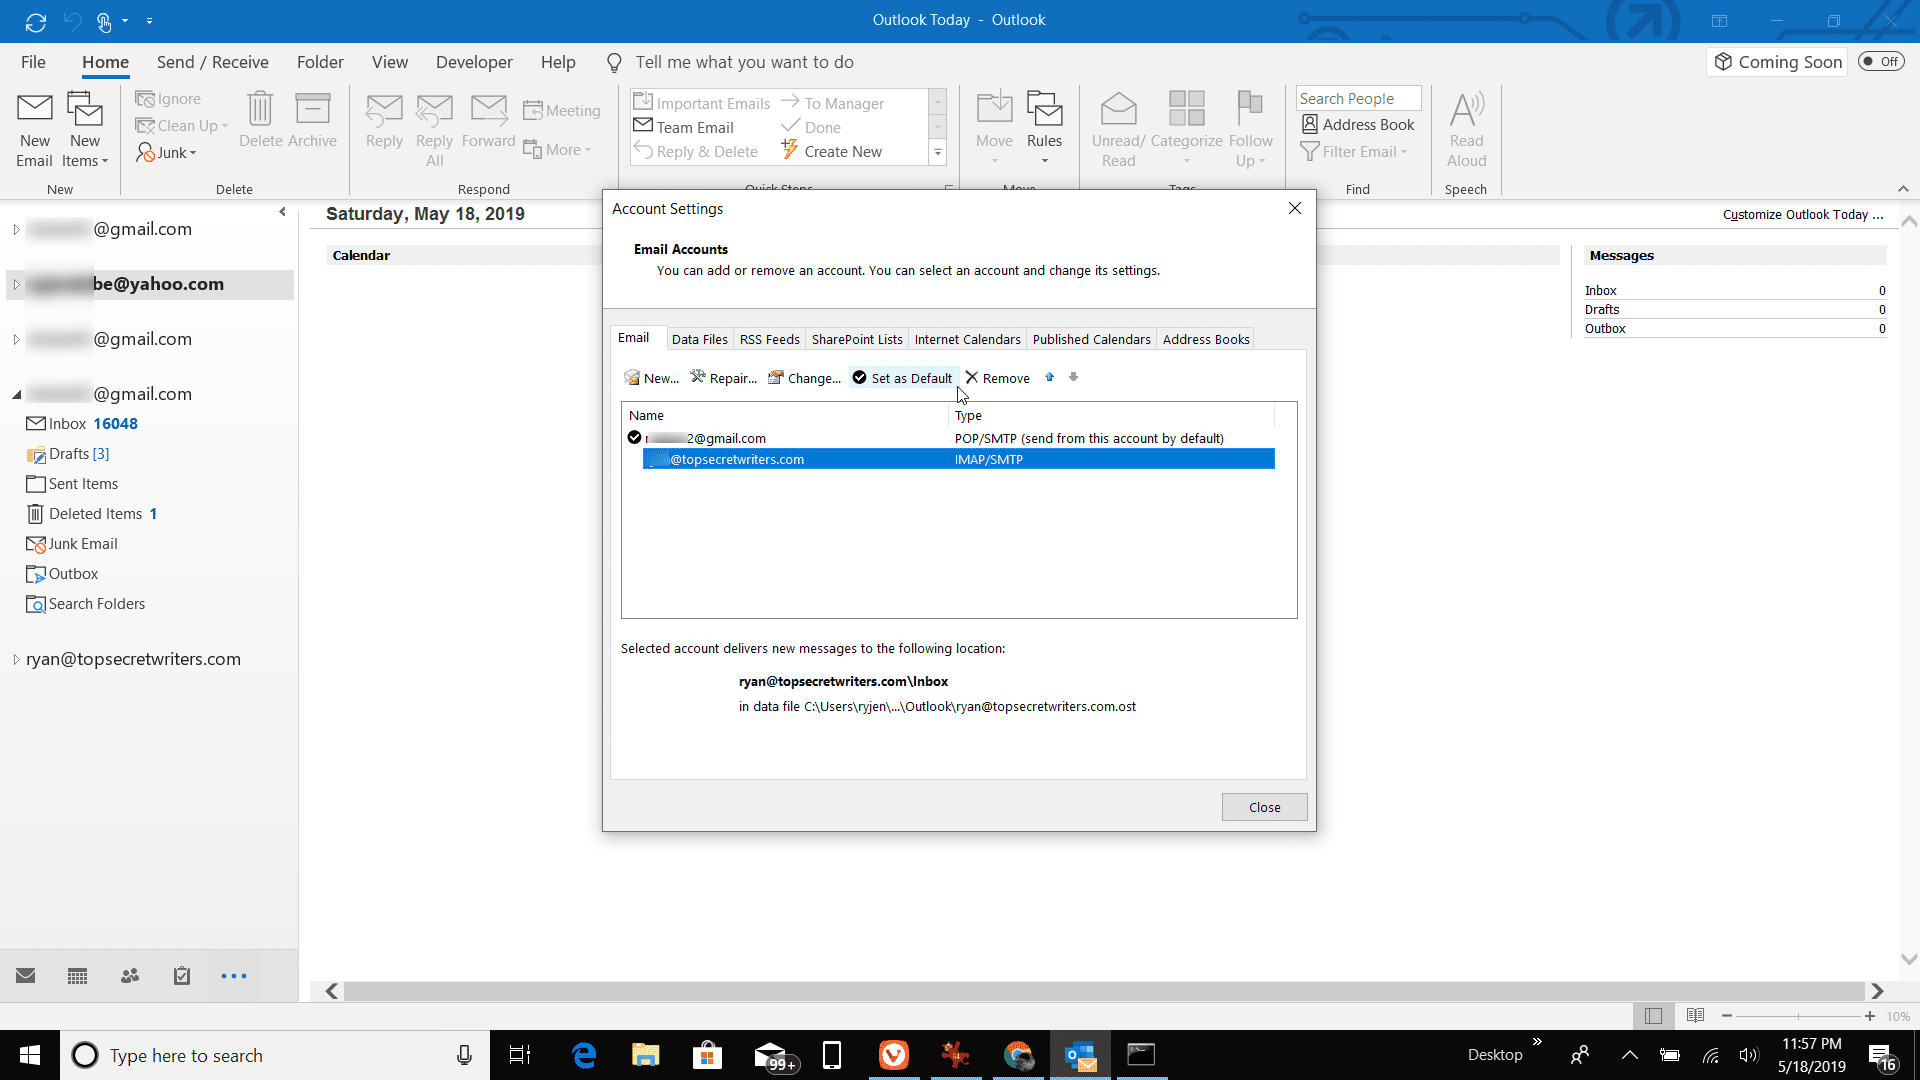 How to Choose Account Used to Send a Message in Outlook